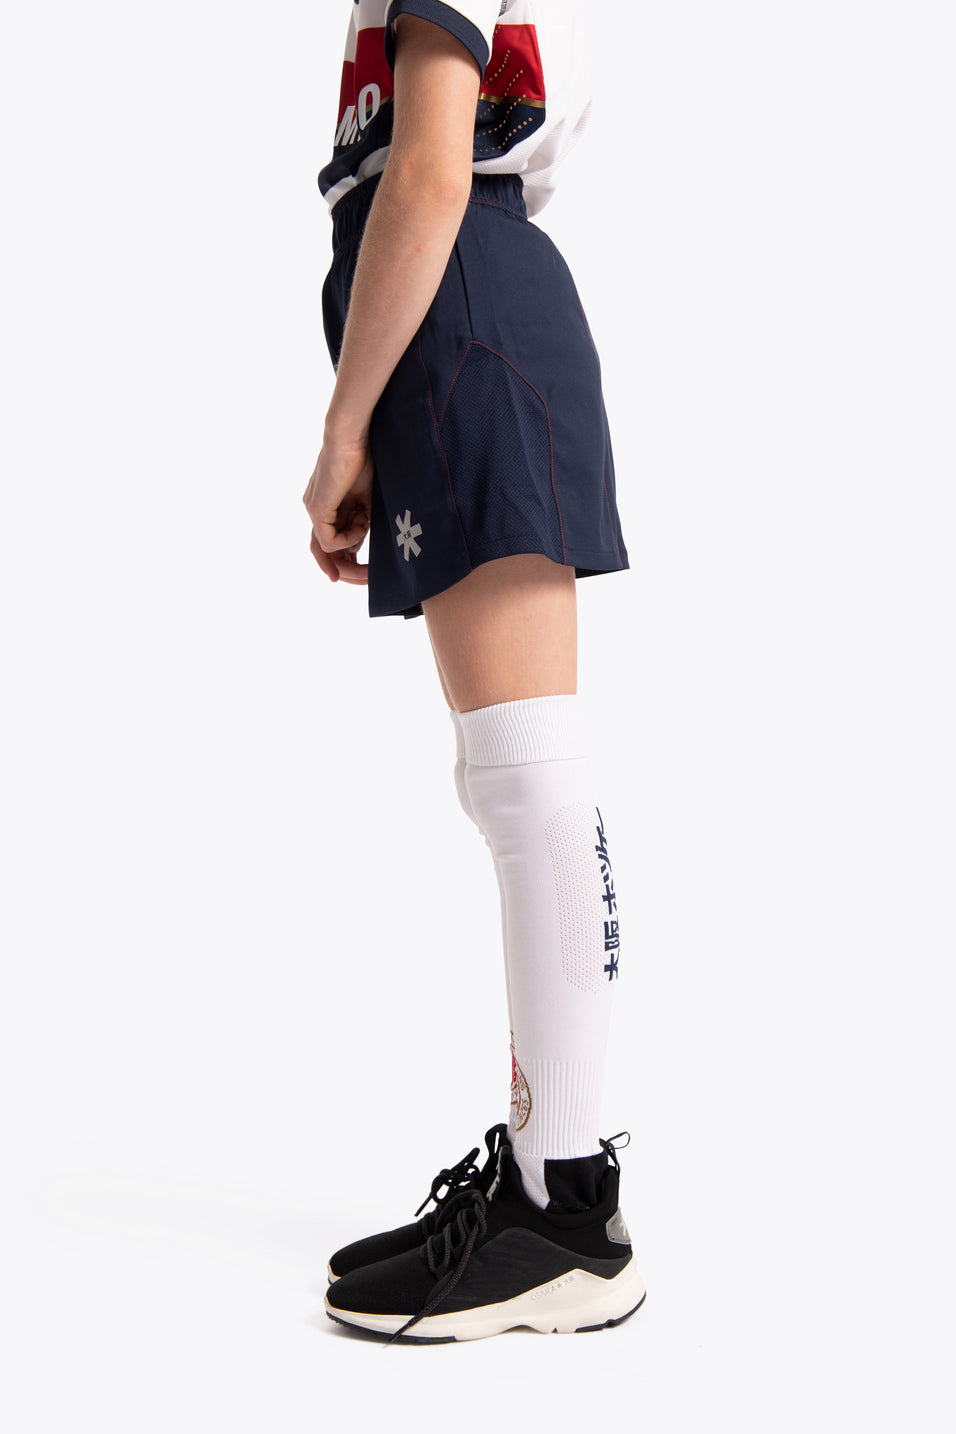 KHC Dragons Deshi Skort - Navy